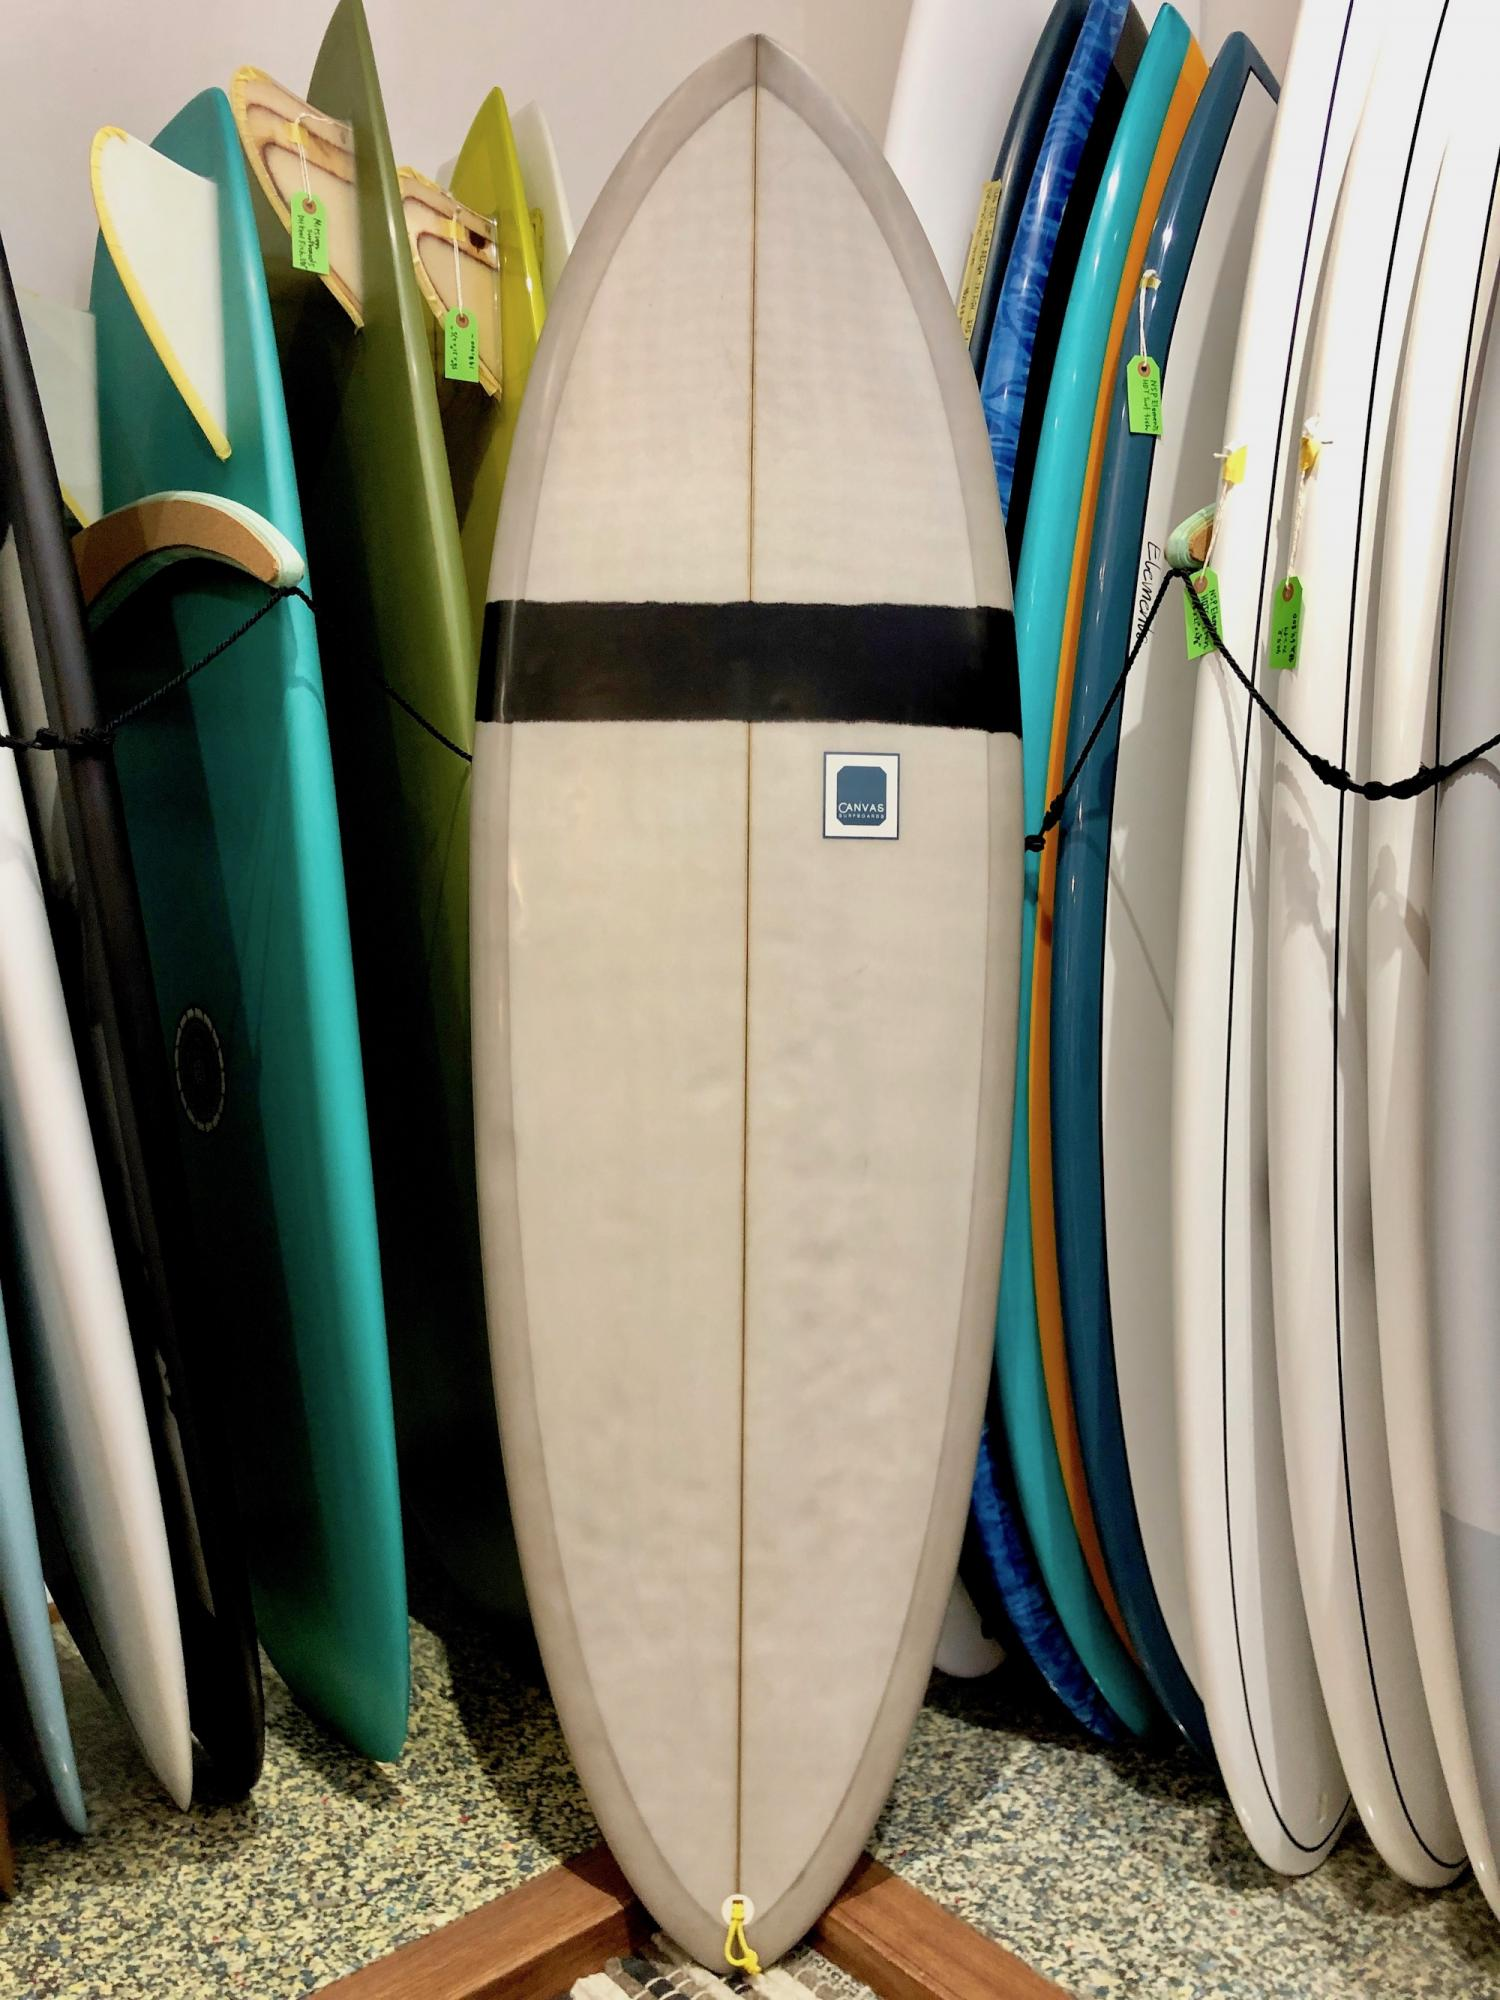 商談中 USED BOARDS (CANVAS SURFBOARDS Flow 5.6)